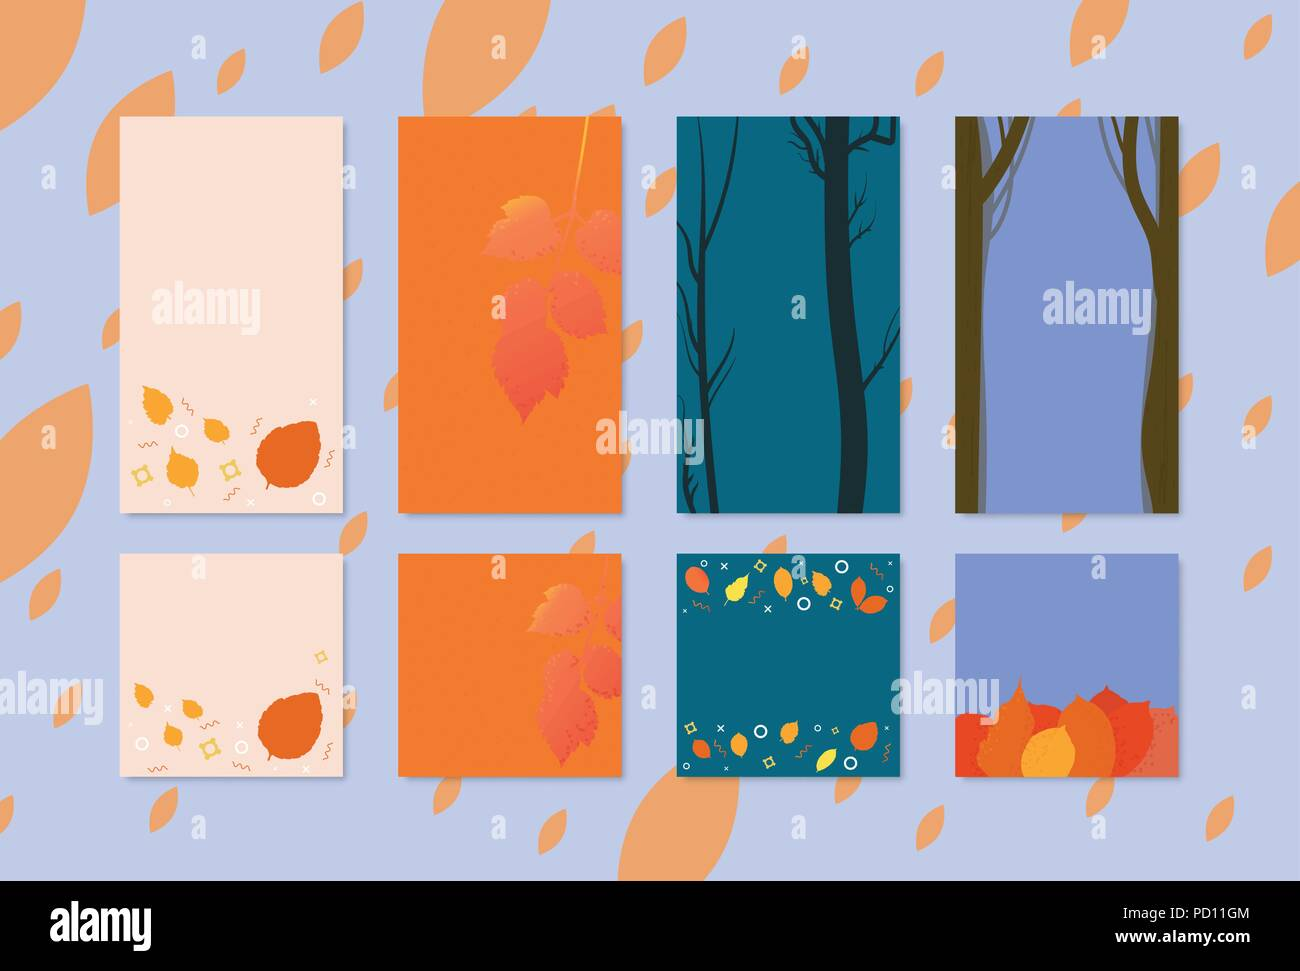 Set Of Backgrounds With Autumn Elements For Social Media Networks